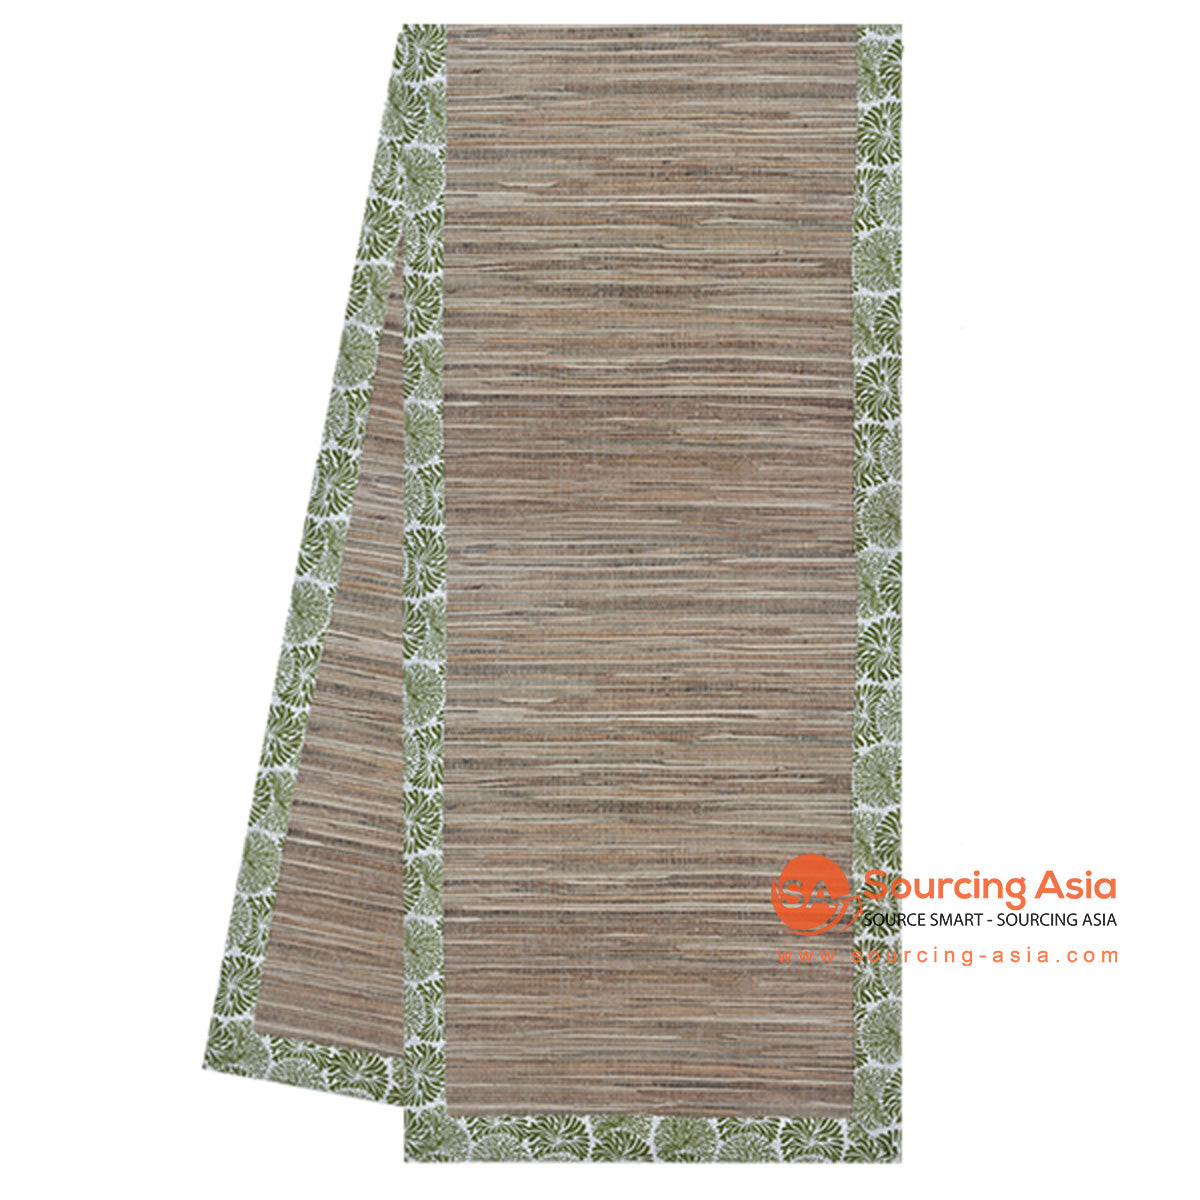 BZN032 SANDALWOOD TABLE RUNNER